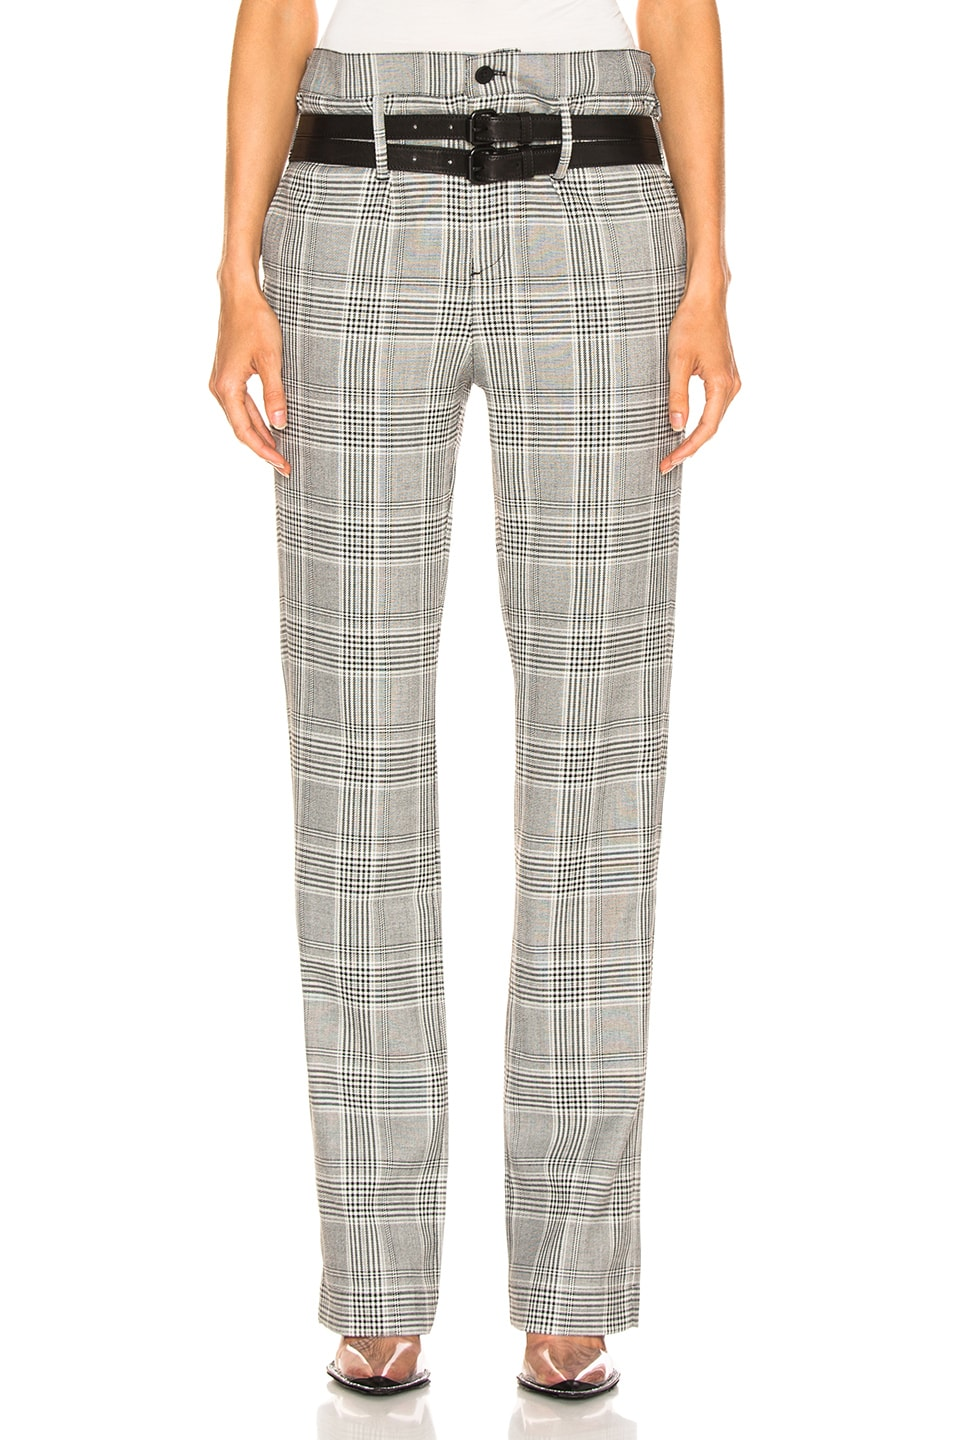 Image 1 of RtA Dillon Pants in Light Plaid